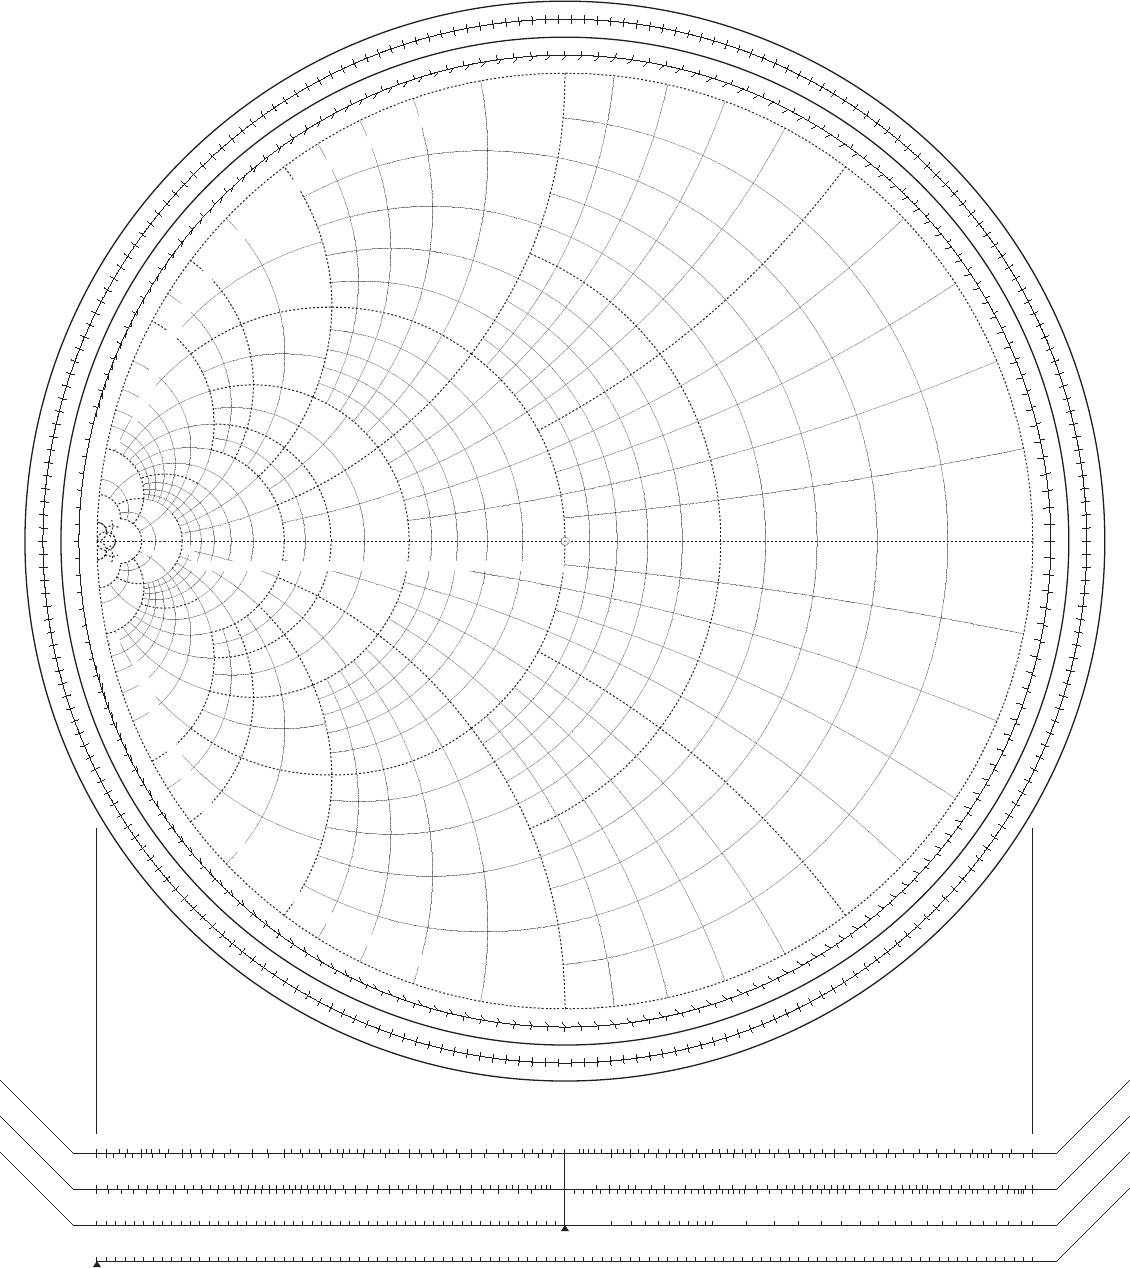 Free admittance smith chart pdf 956kb 1 pages admittance smith chart ccuart Choice Image